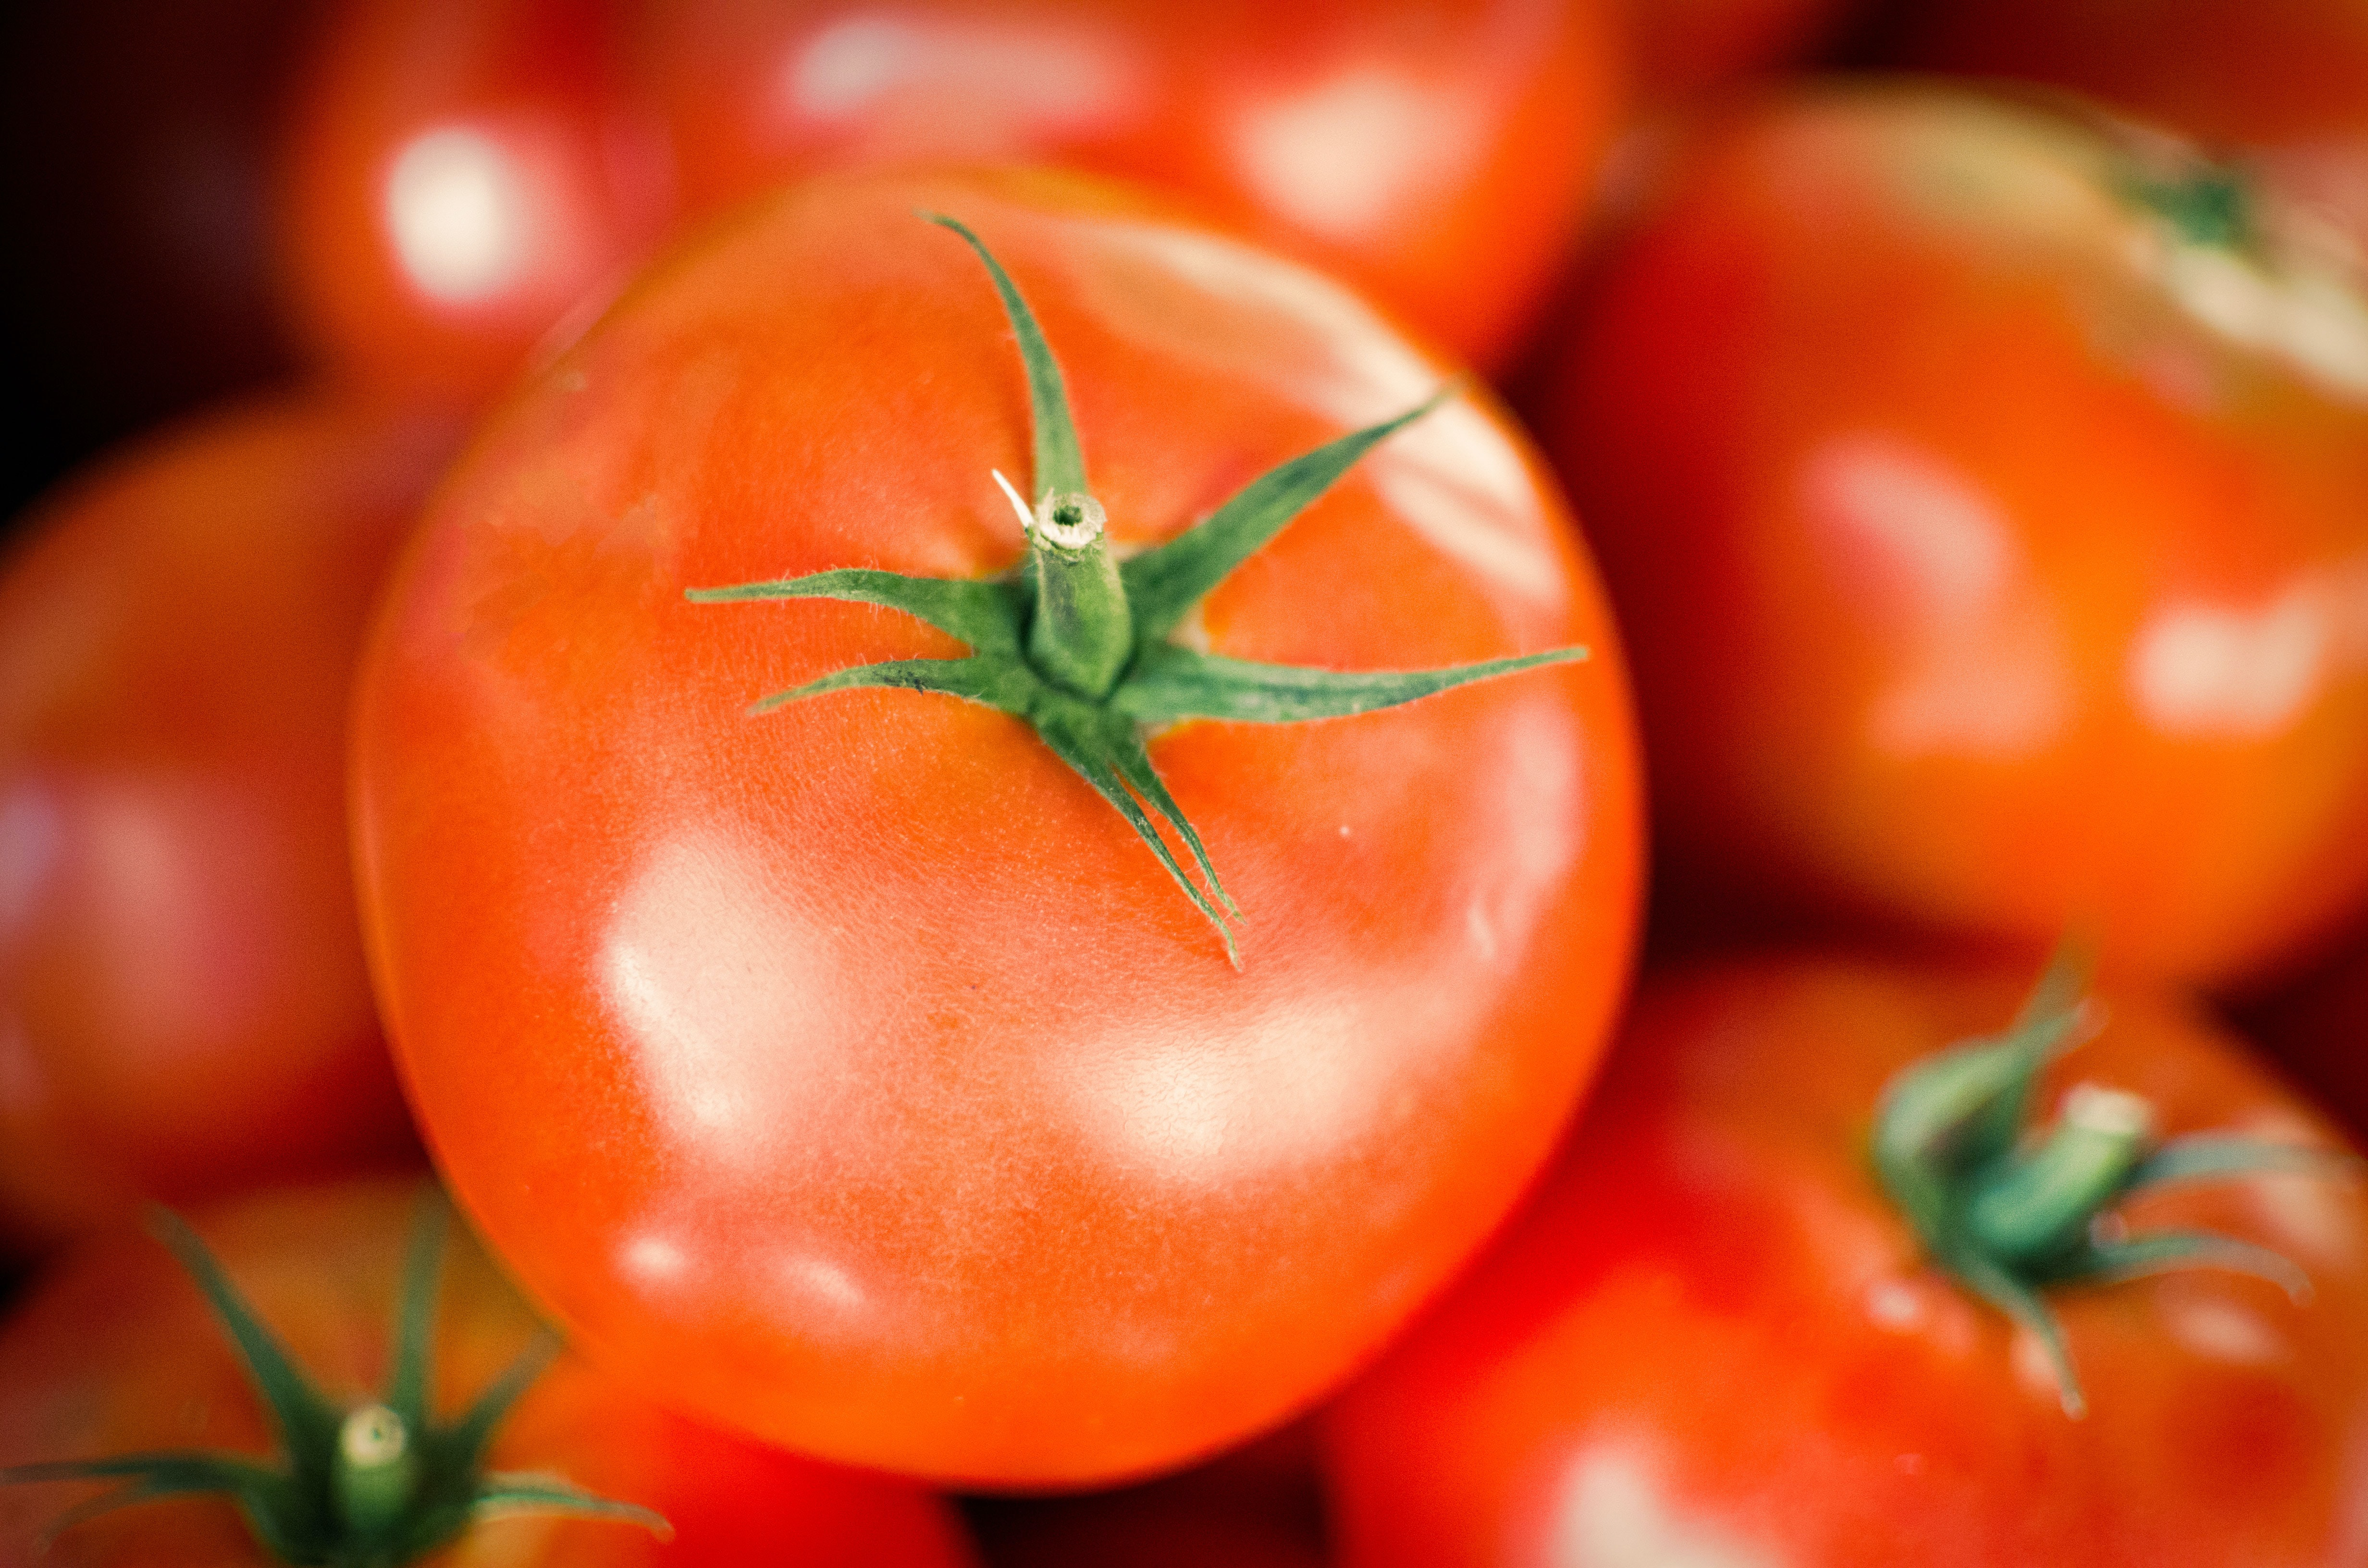 Shiny, red, fresh, ripe, red tomatoes in Plovdiv